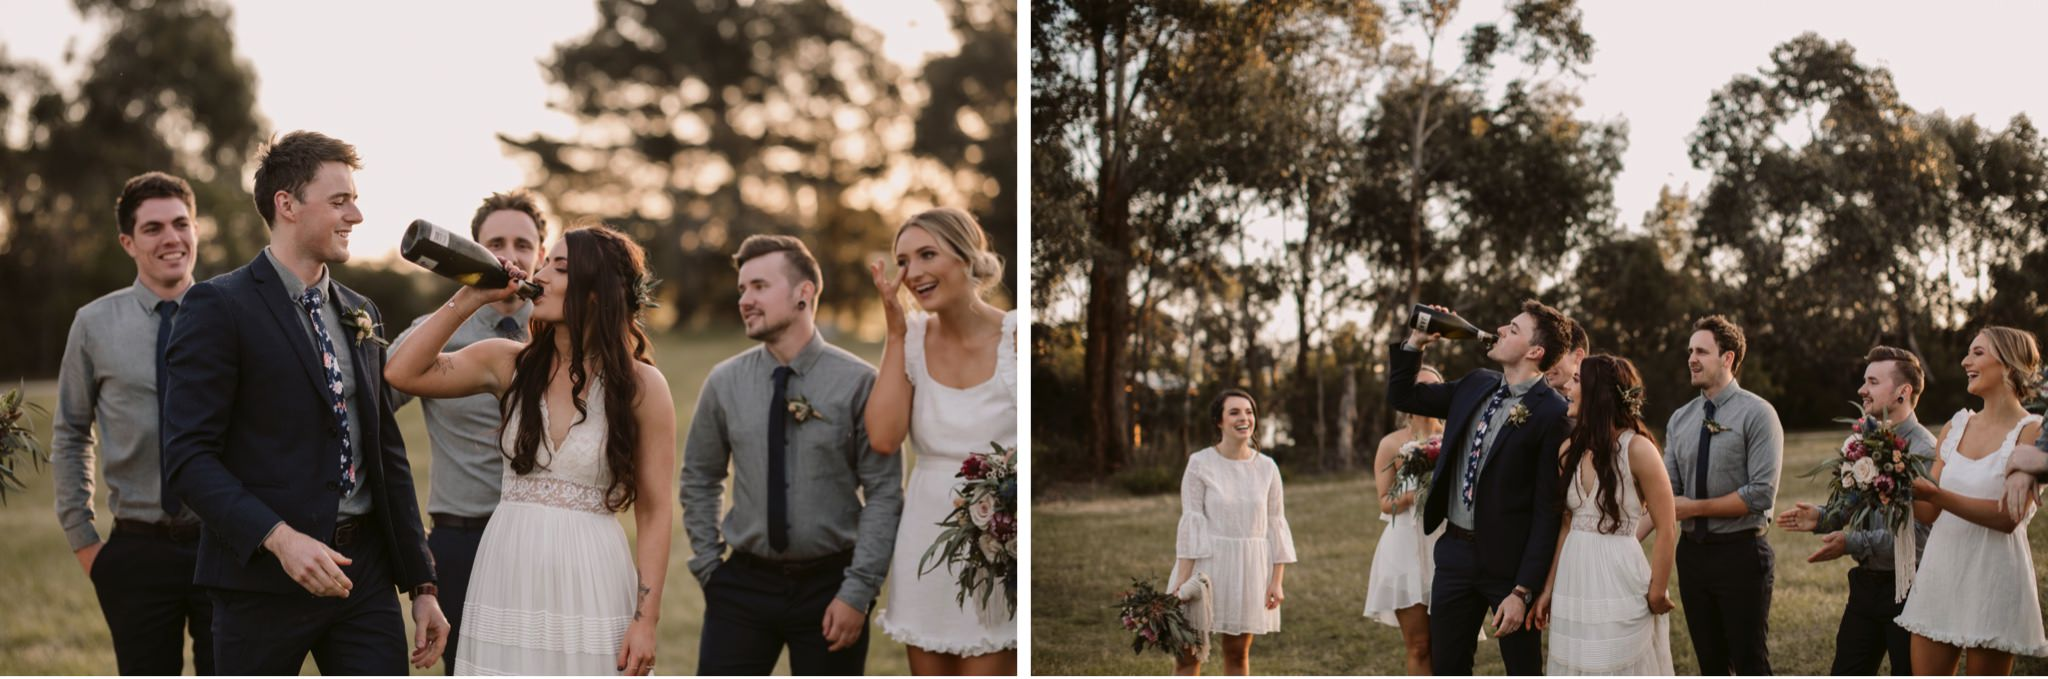 Baxter Barn Wedding Photography Mornington Peninsula103.jpg